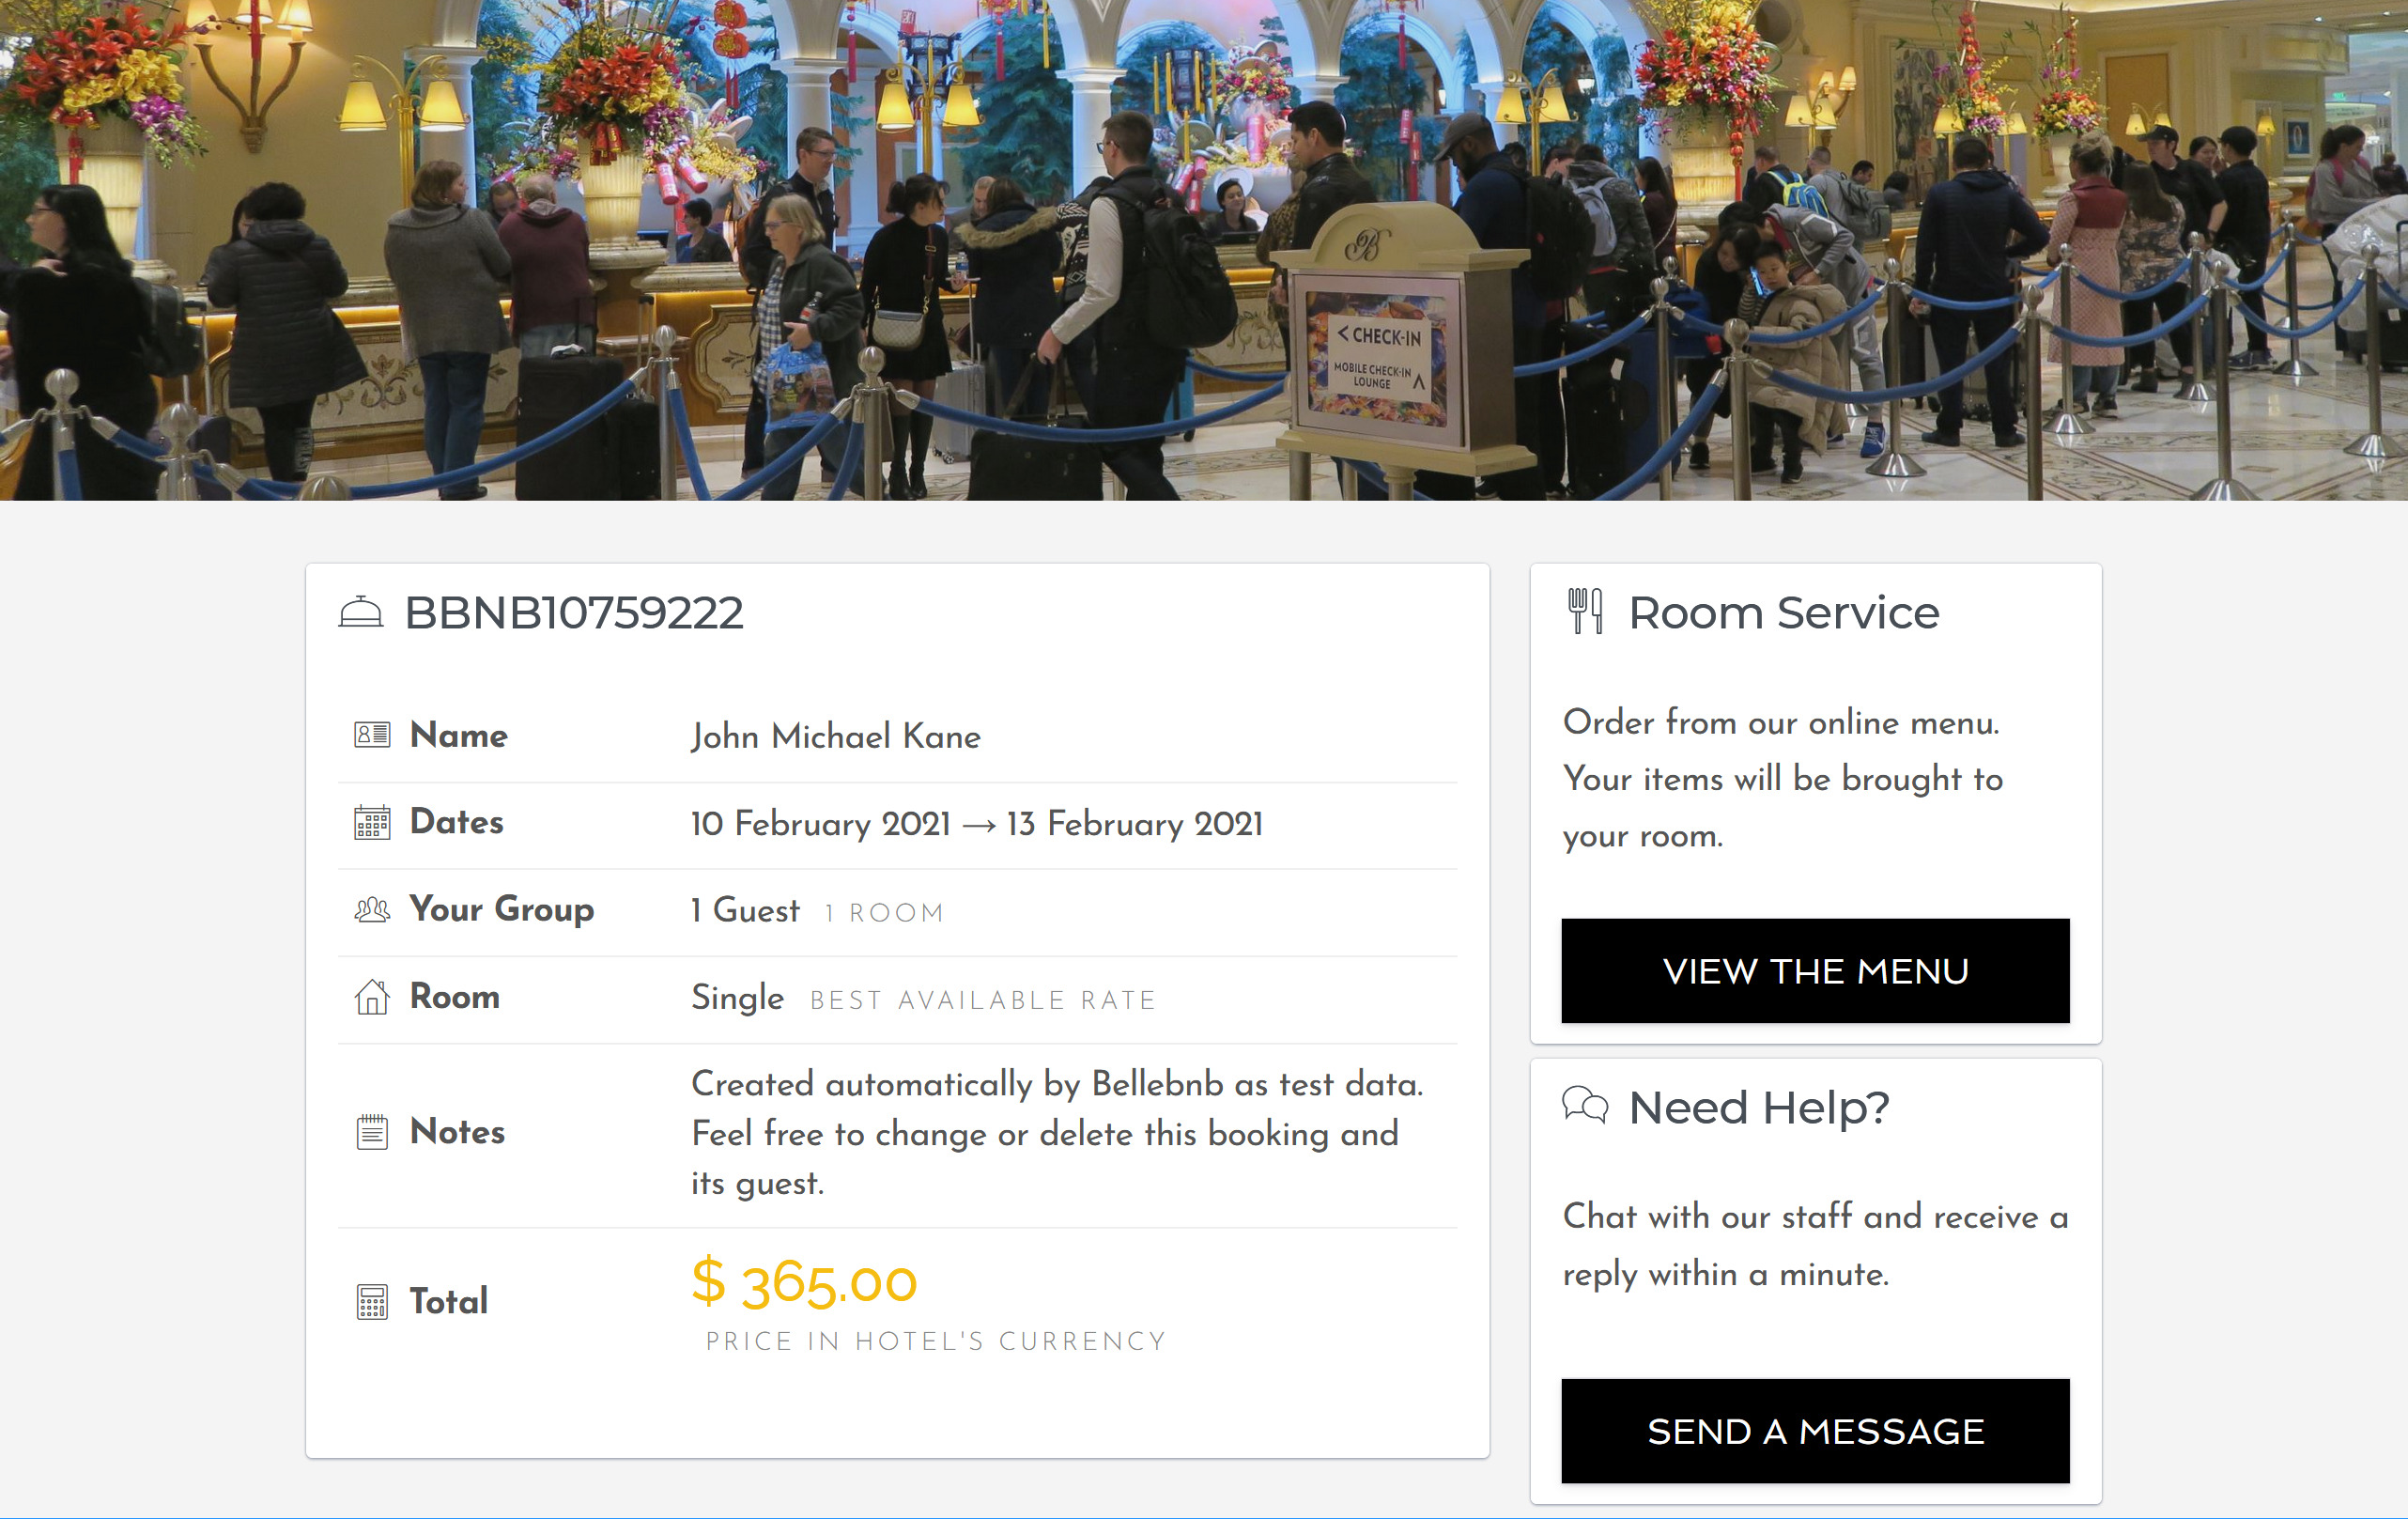 Hotel Concierge Management Software Bellebnb.